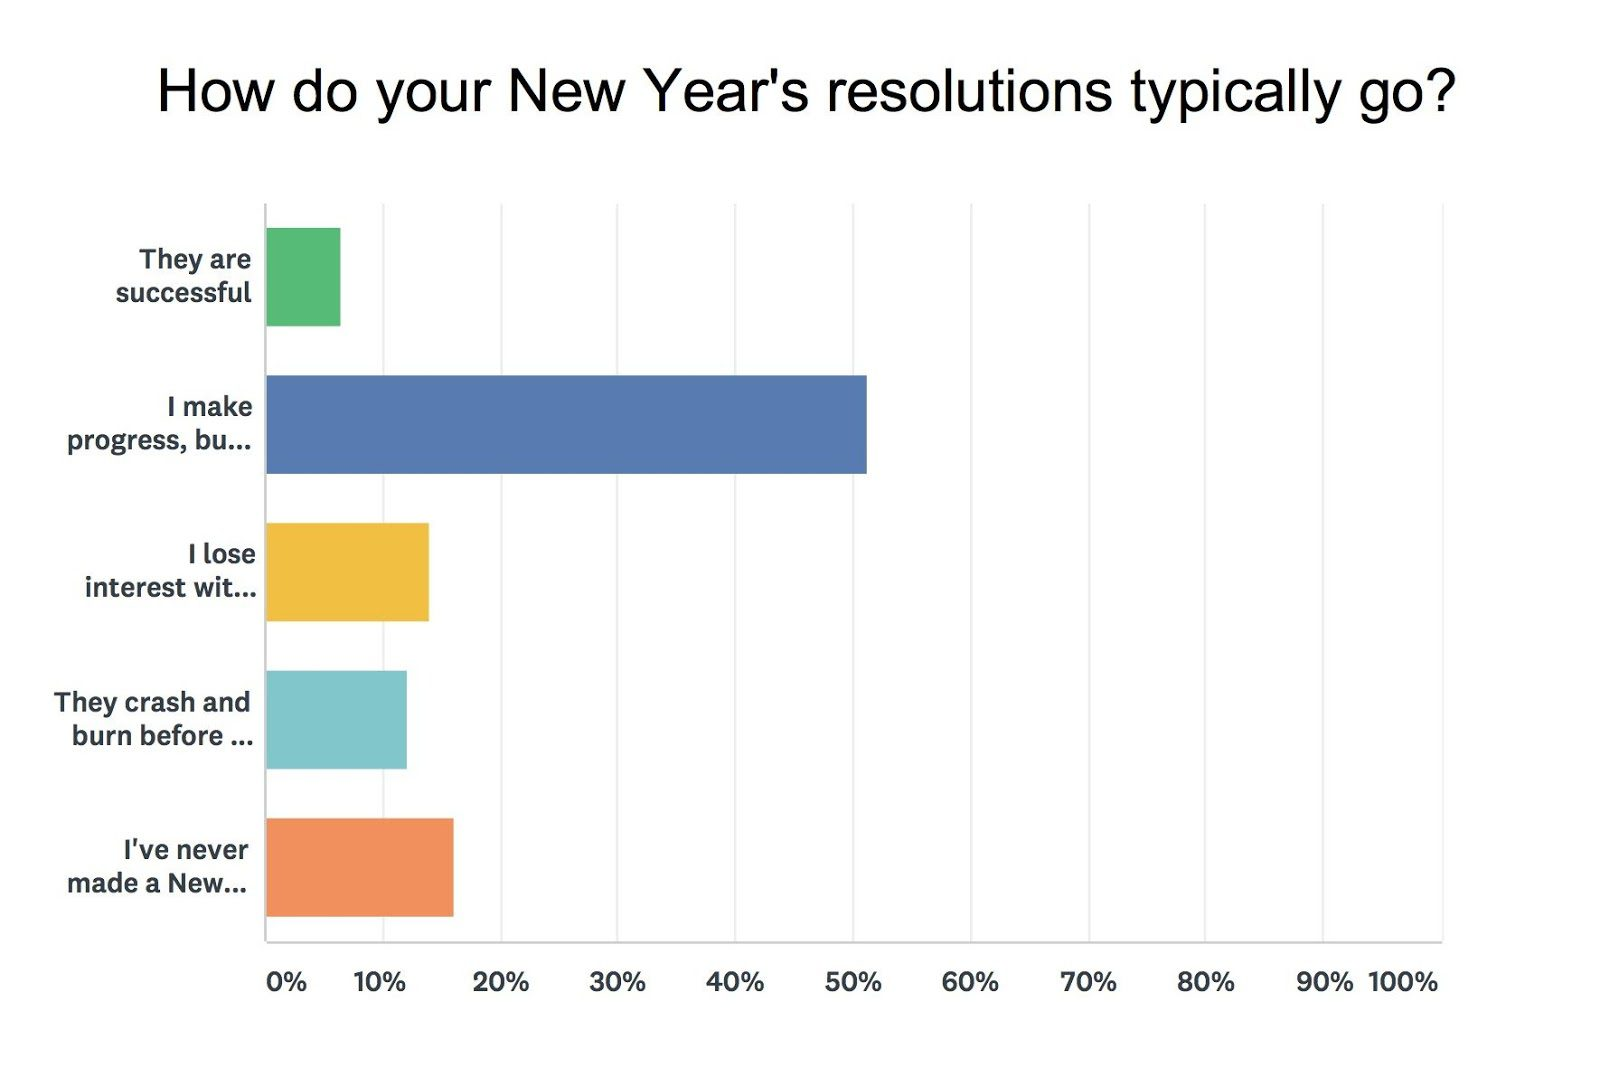 New year's resolutions results